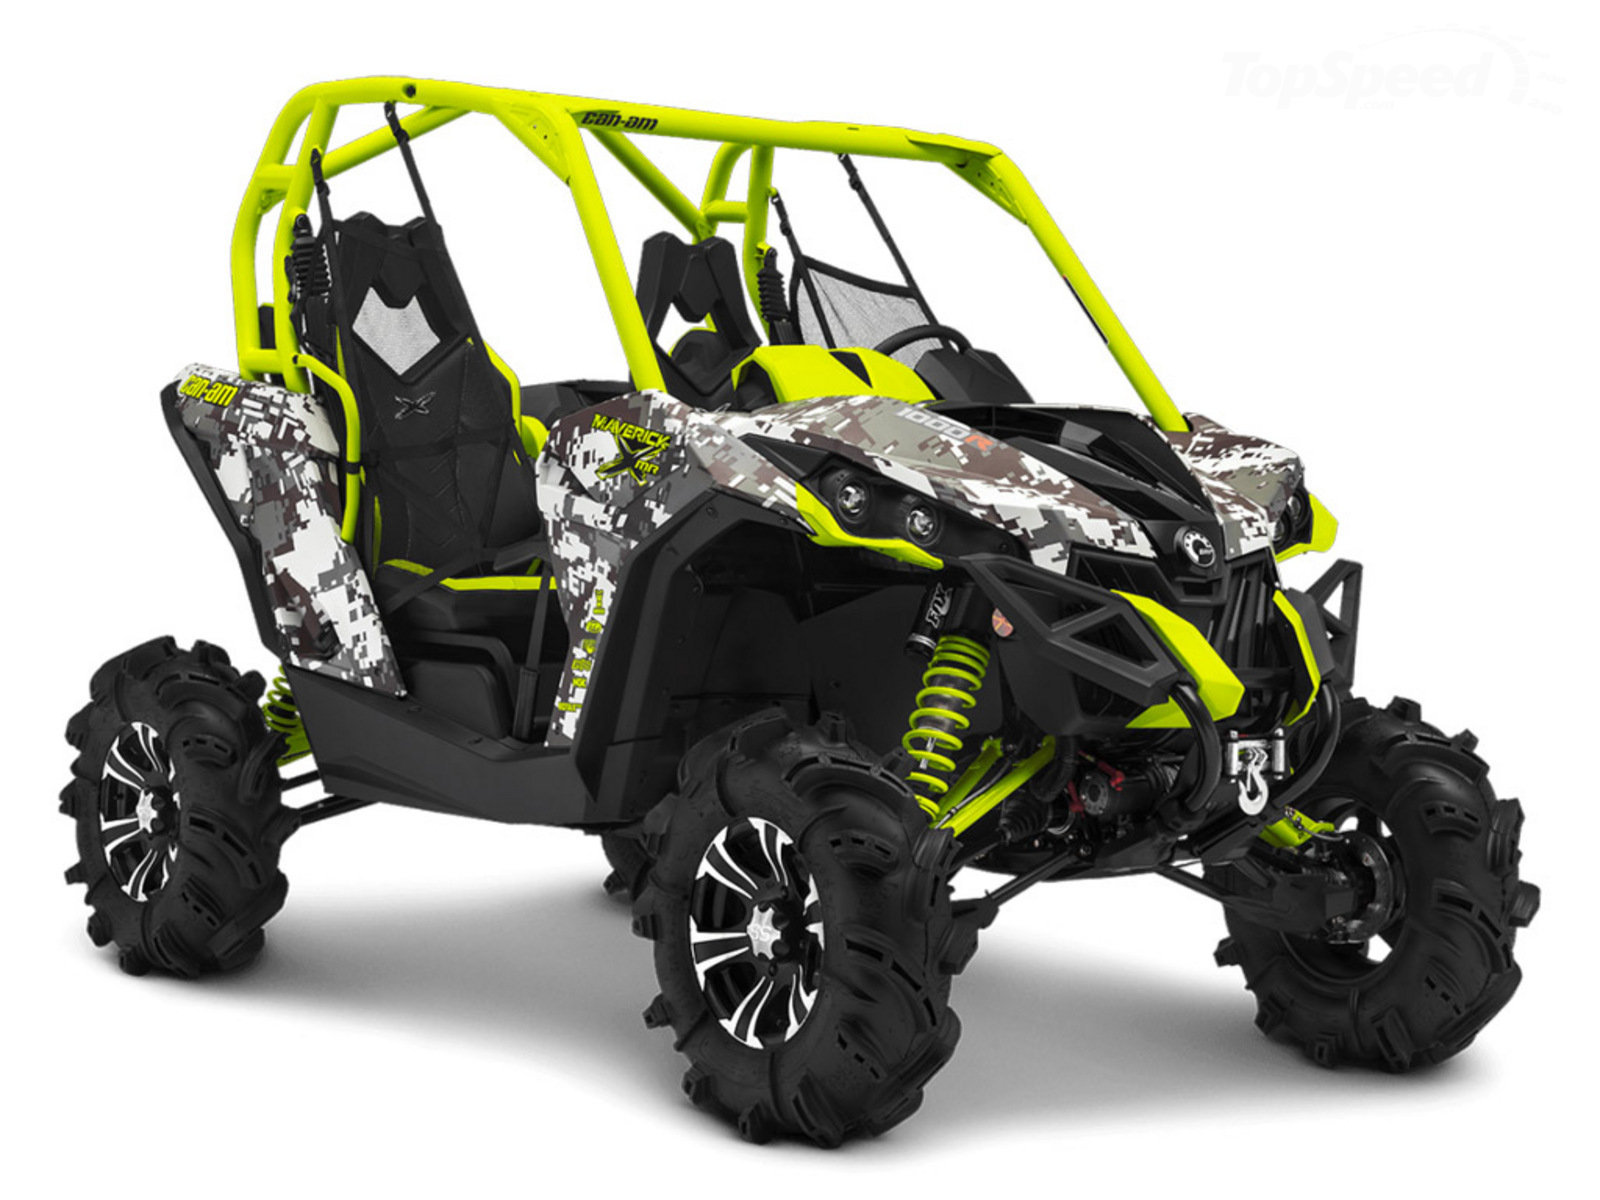 2015 Can-Am Maverick X Mr DPS Review - Top Speed